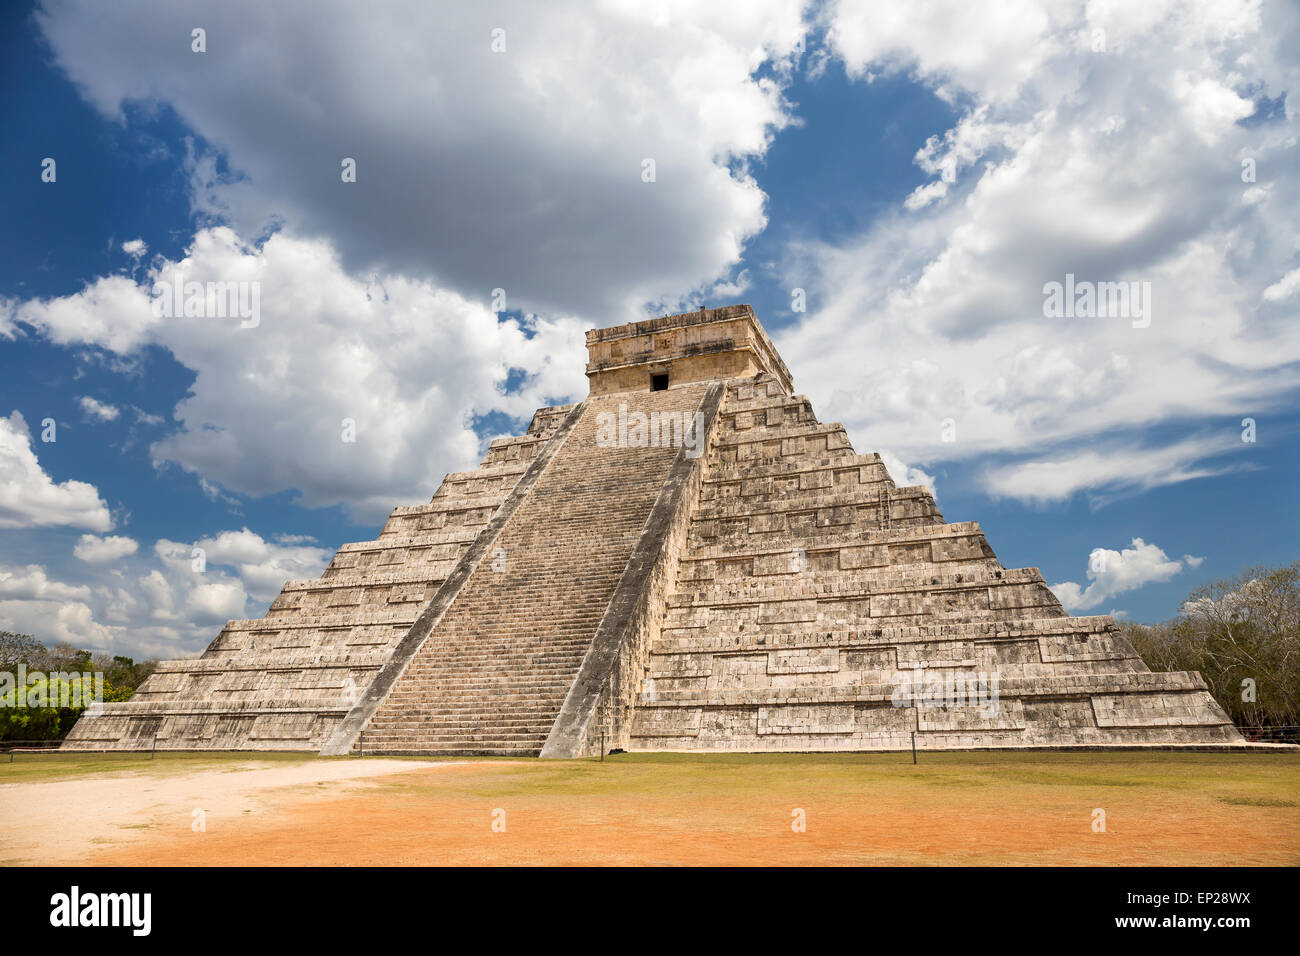 El Castillo (The Kukulkan Temple) of Chichen Itza, mayan pyramid in Yucatan, Mexico - Stock Image